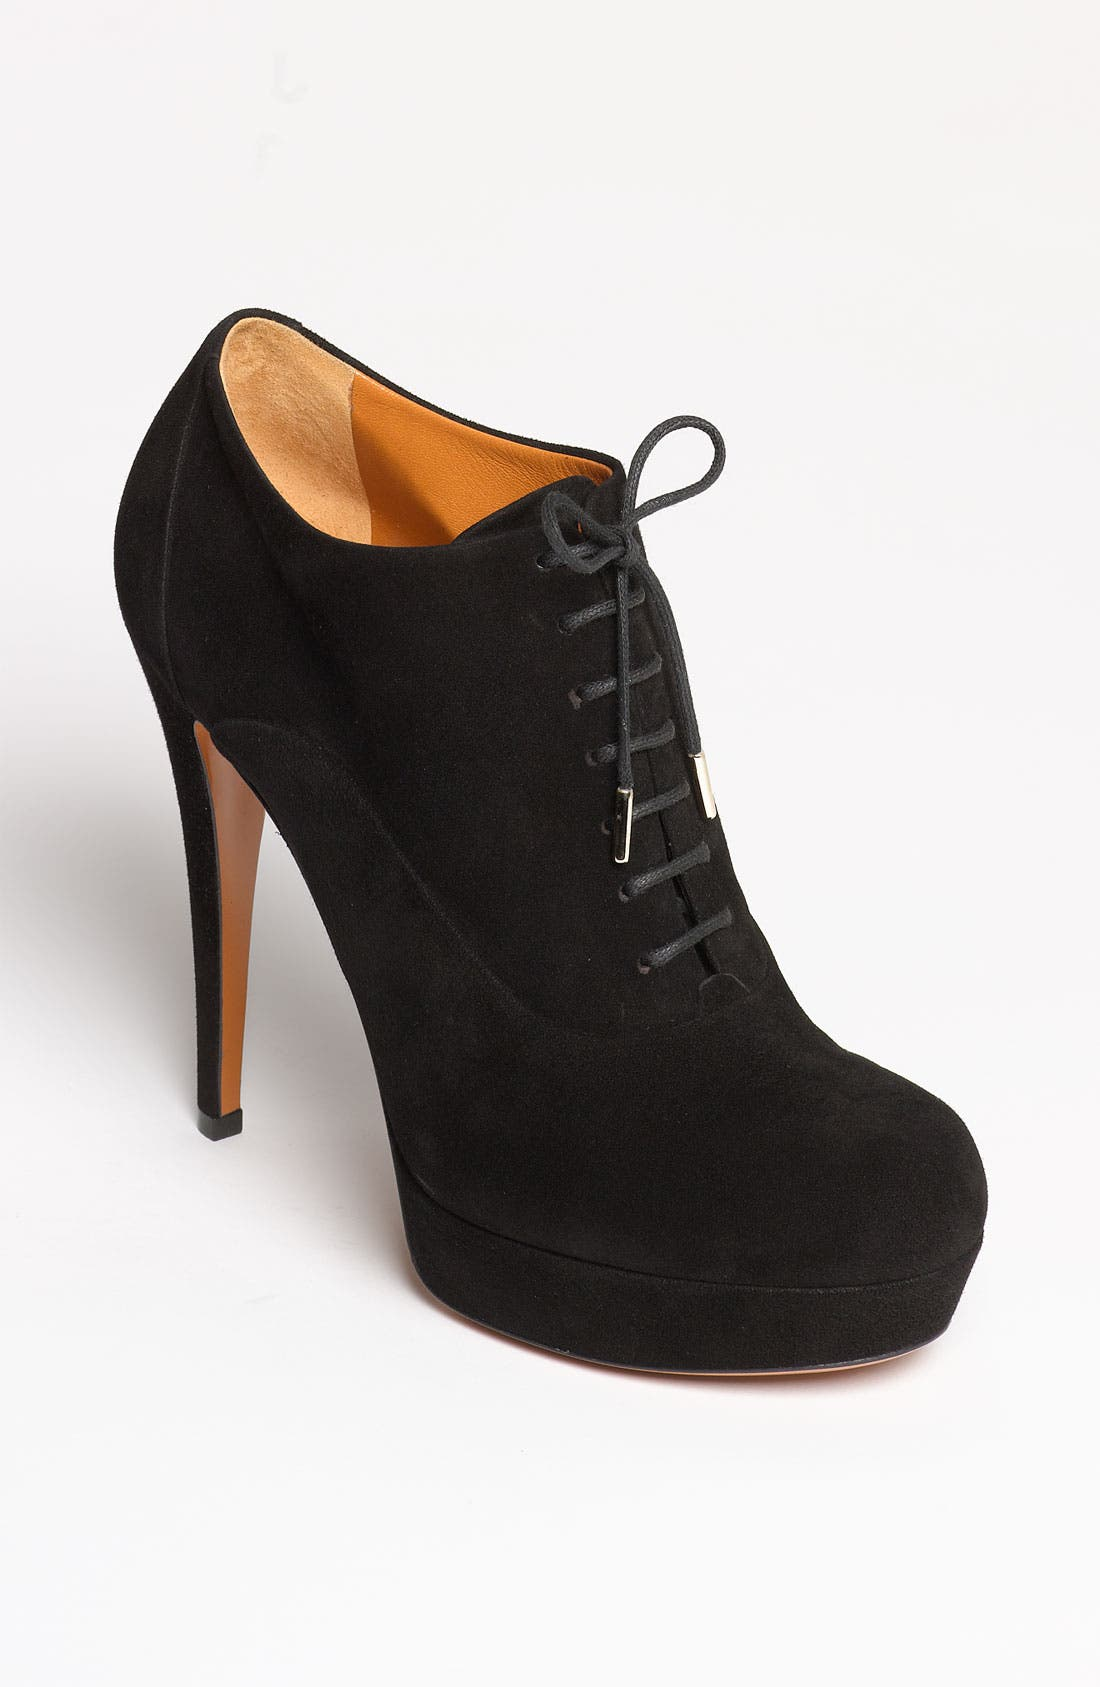 Main Image - Gucci Lace-Up Bootie